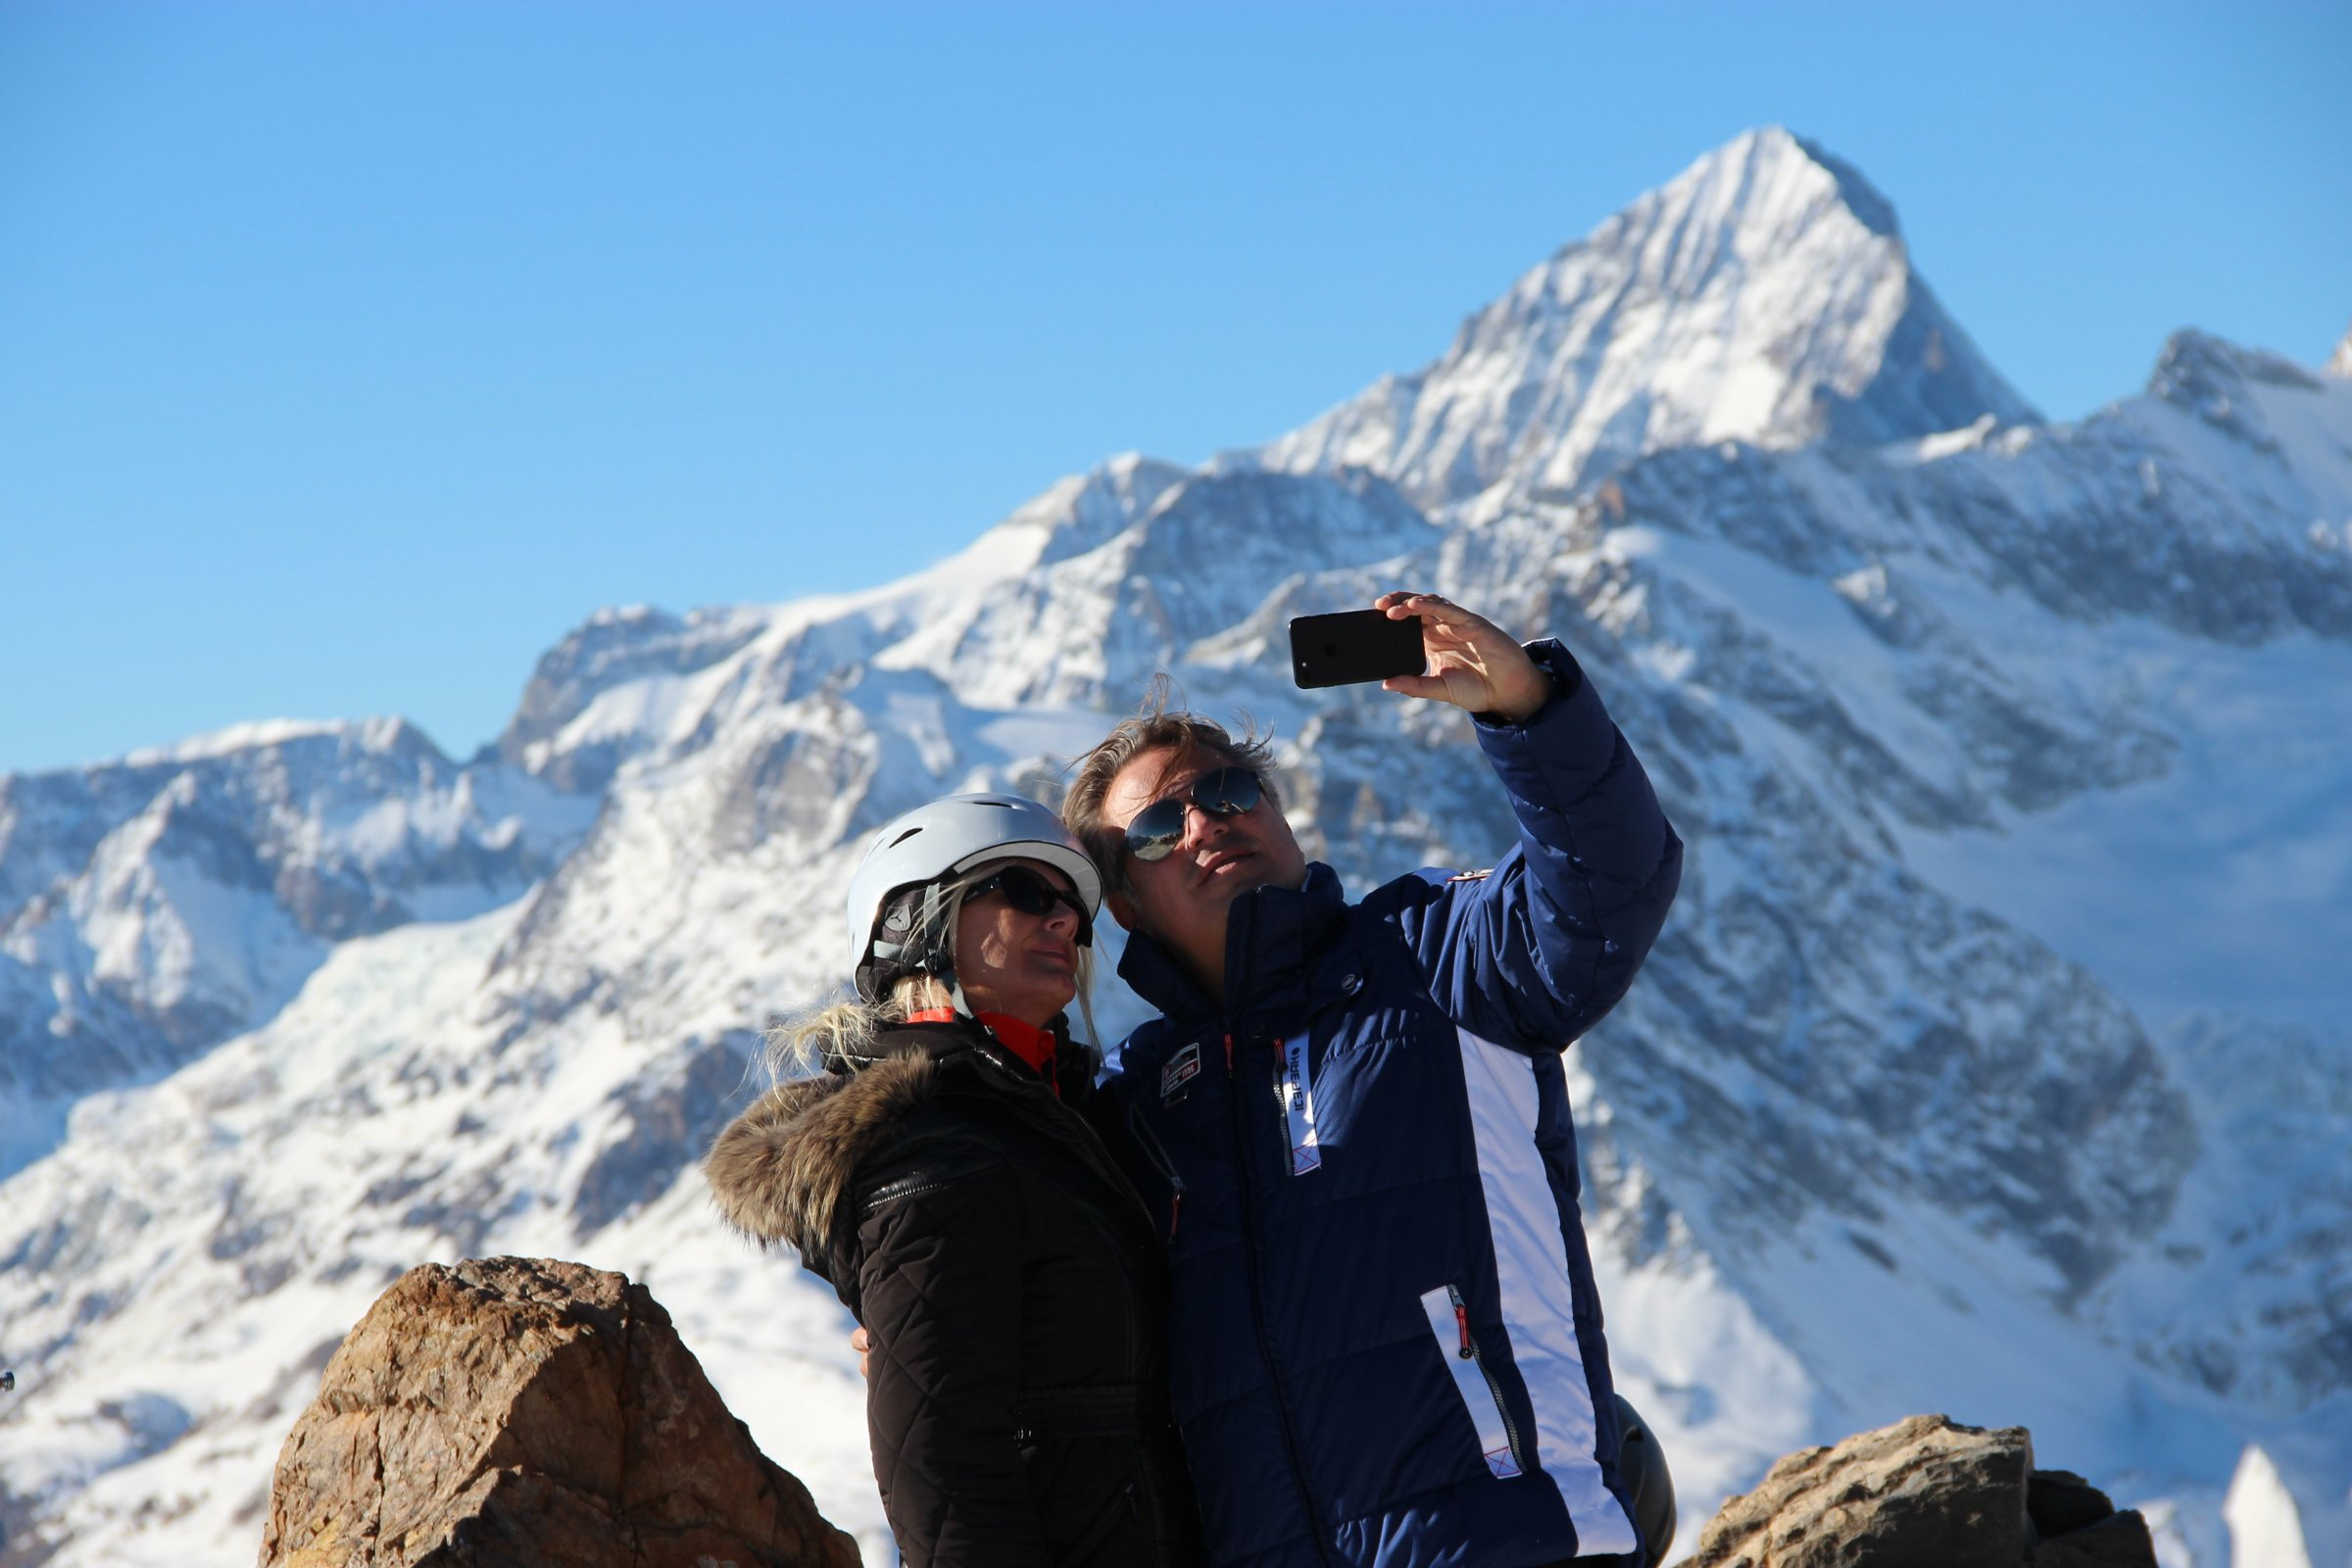 Couple Taking Selfie in Front of Snow-Covered Mountains